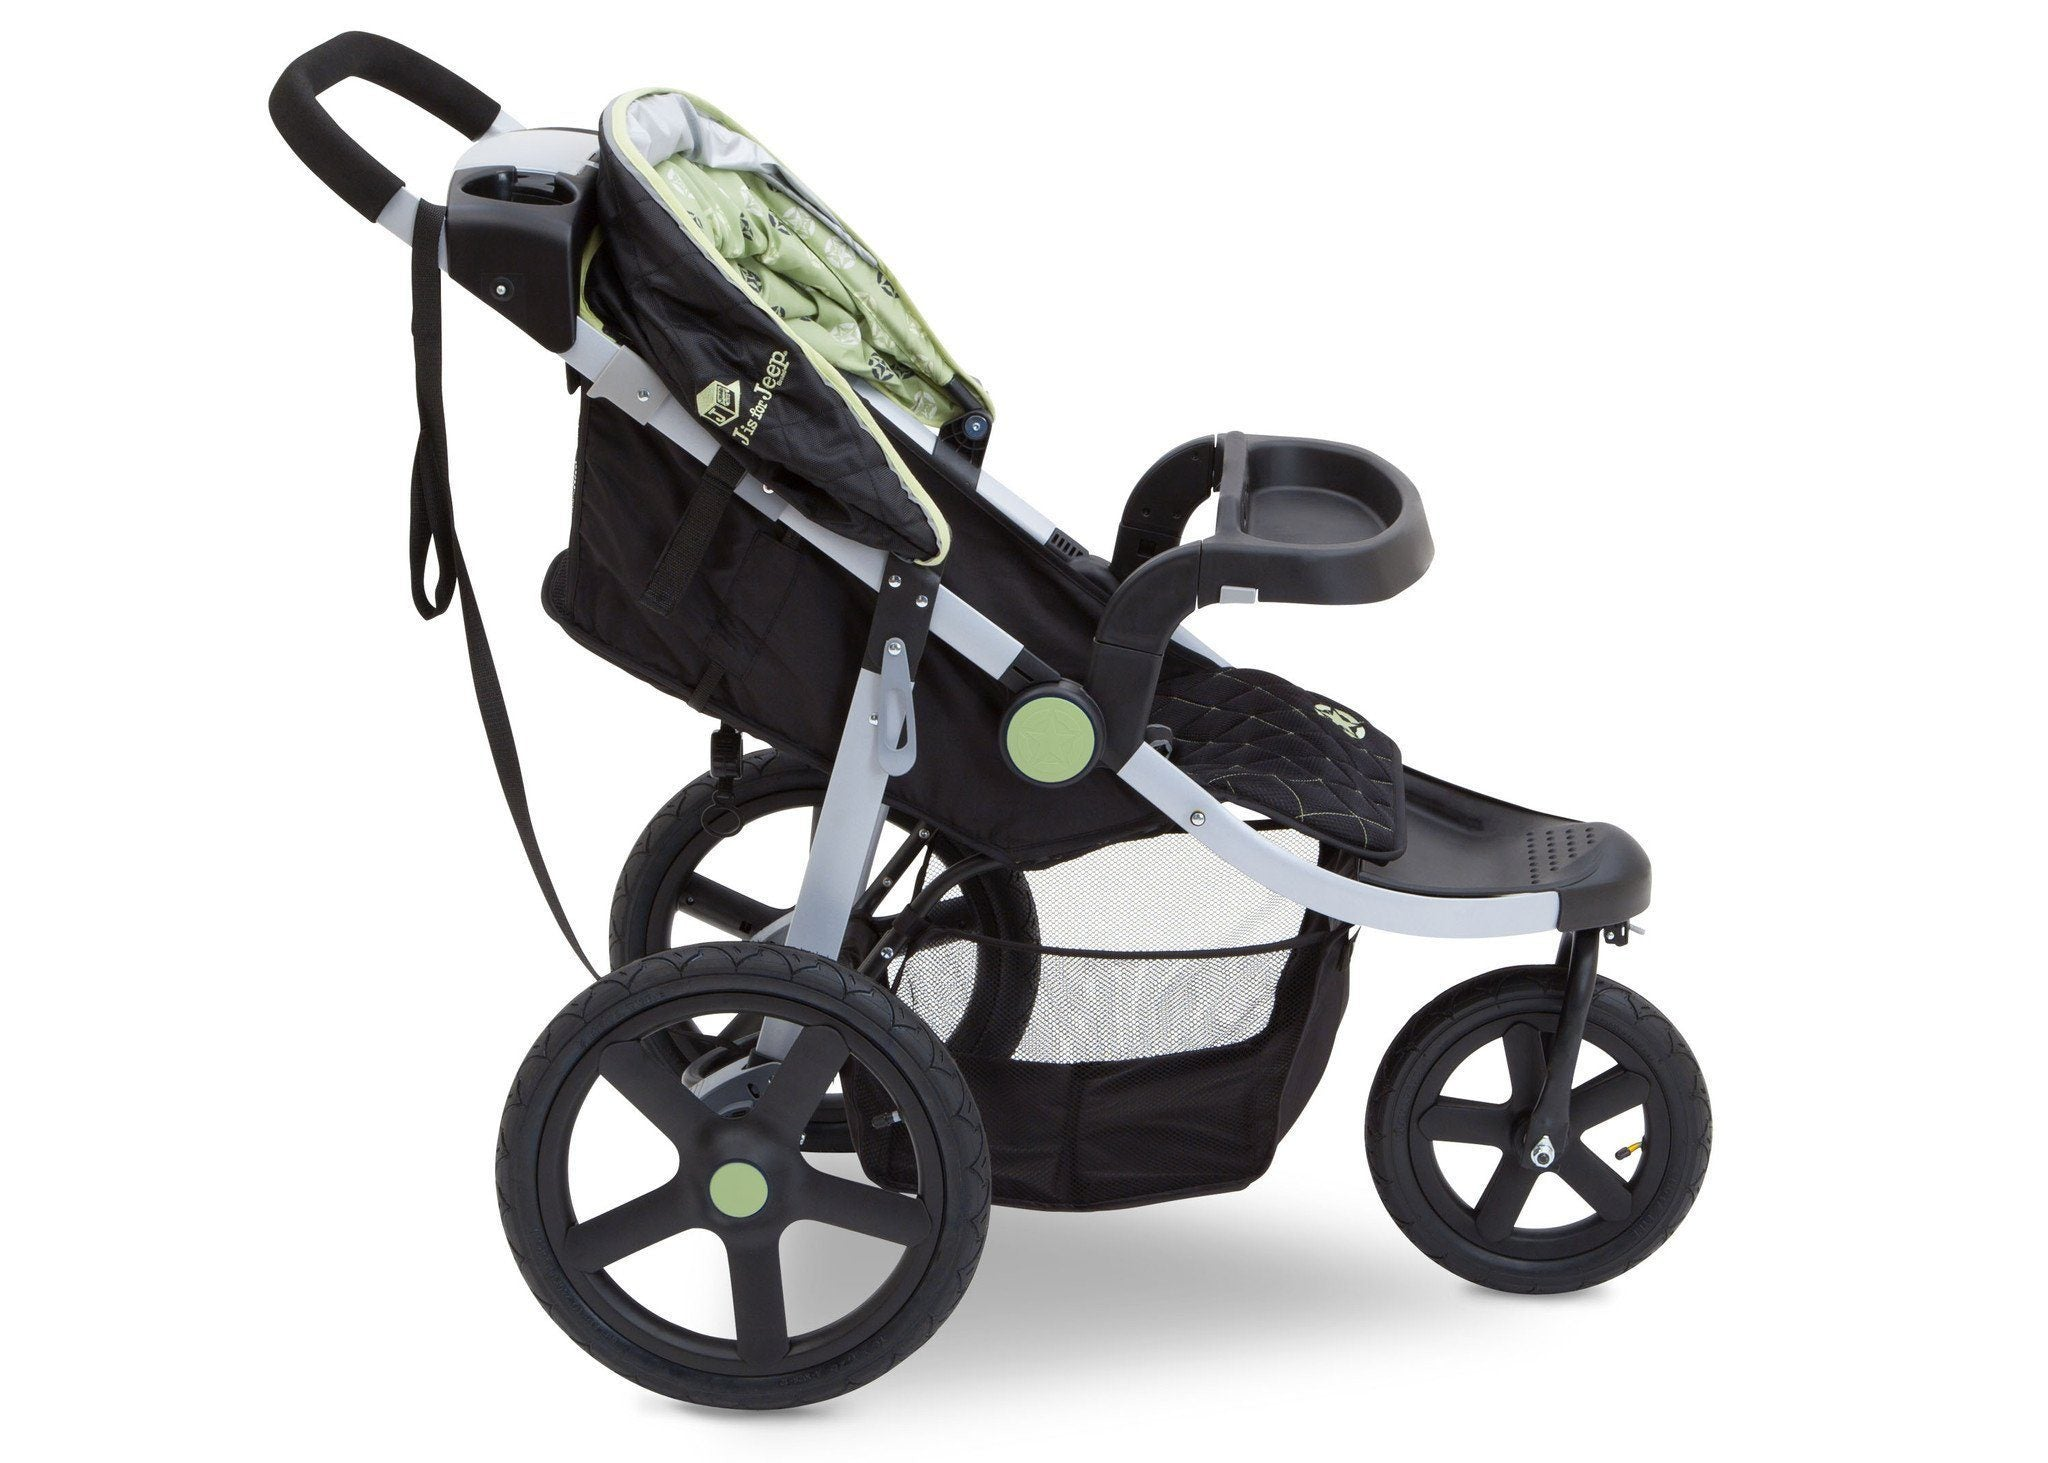 Jeep Adventure All Terrain Jogger Stroller by Delta Children, Destination (314), with multi-position reclining seat